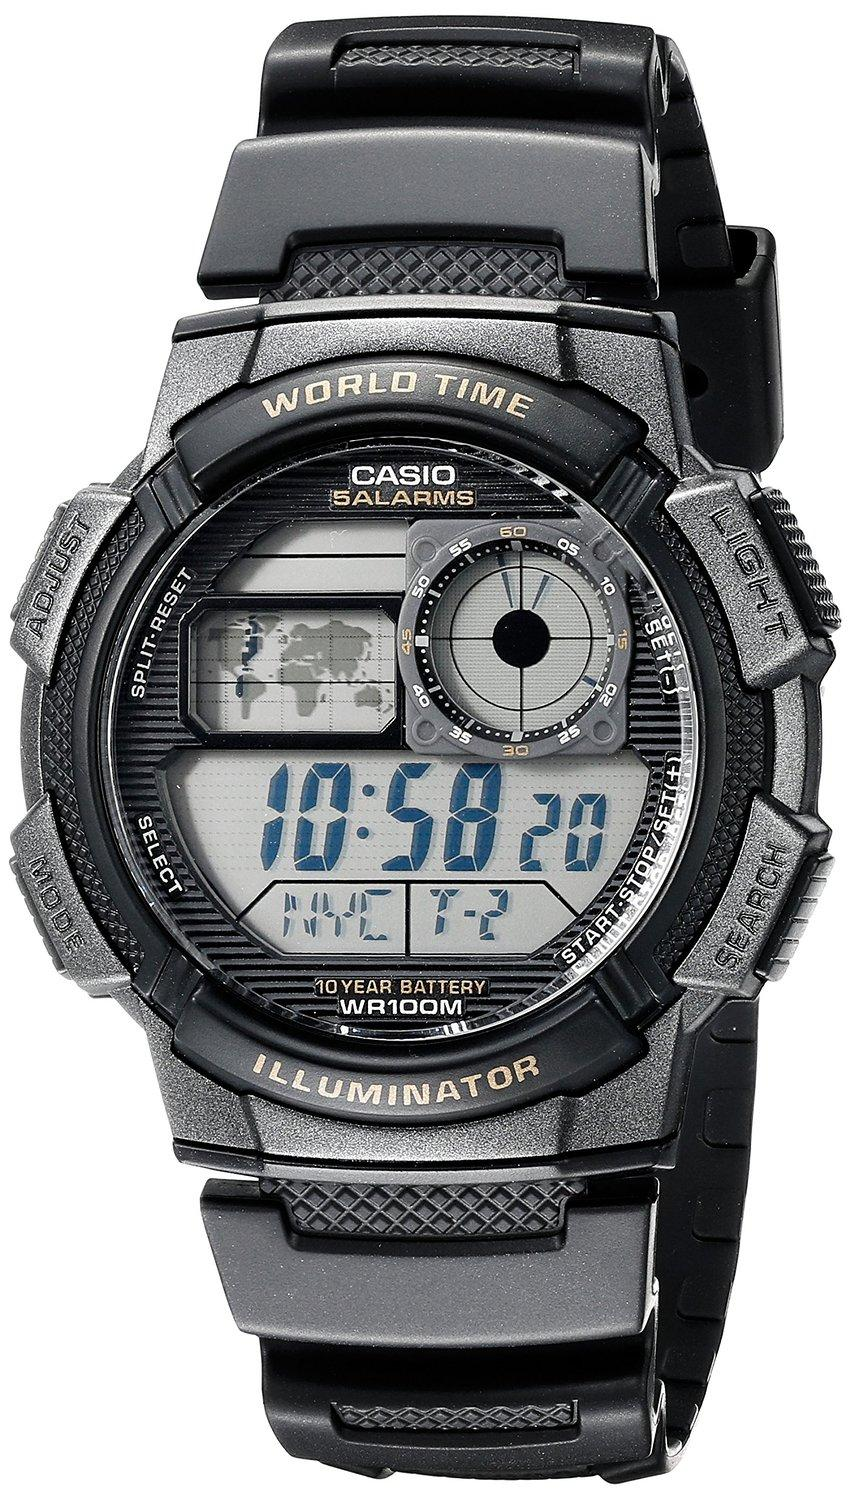 Casio Men's AE-1000W-1AVDF Resin Sport Watch with Black Band